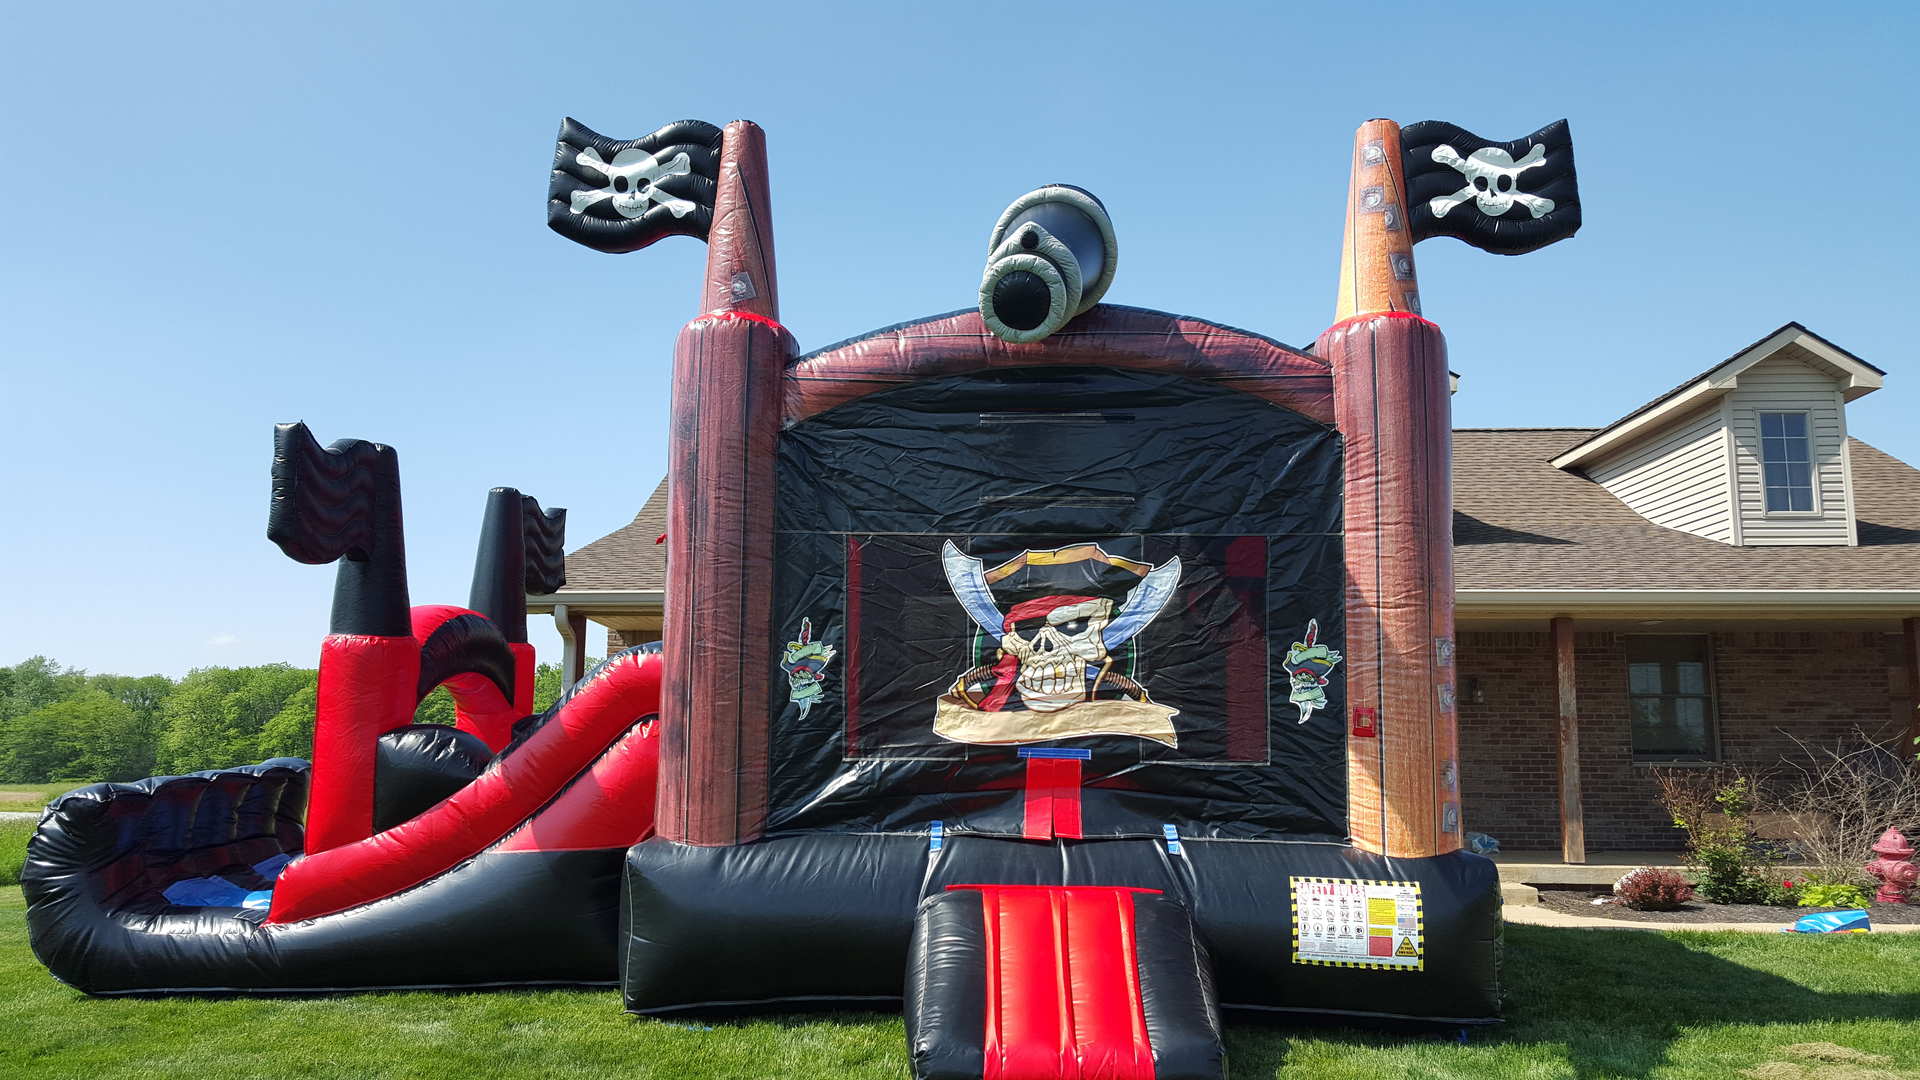 tampa bounce house rentals & inflatable games